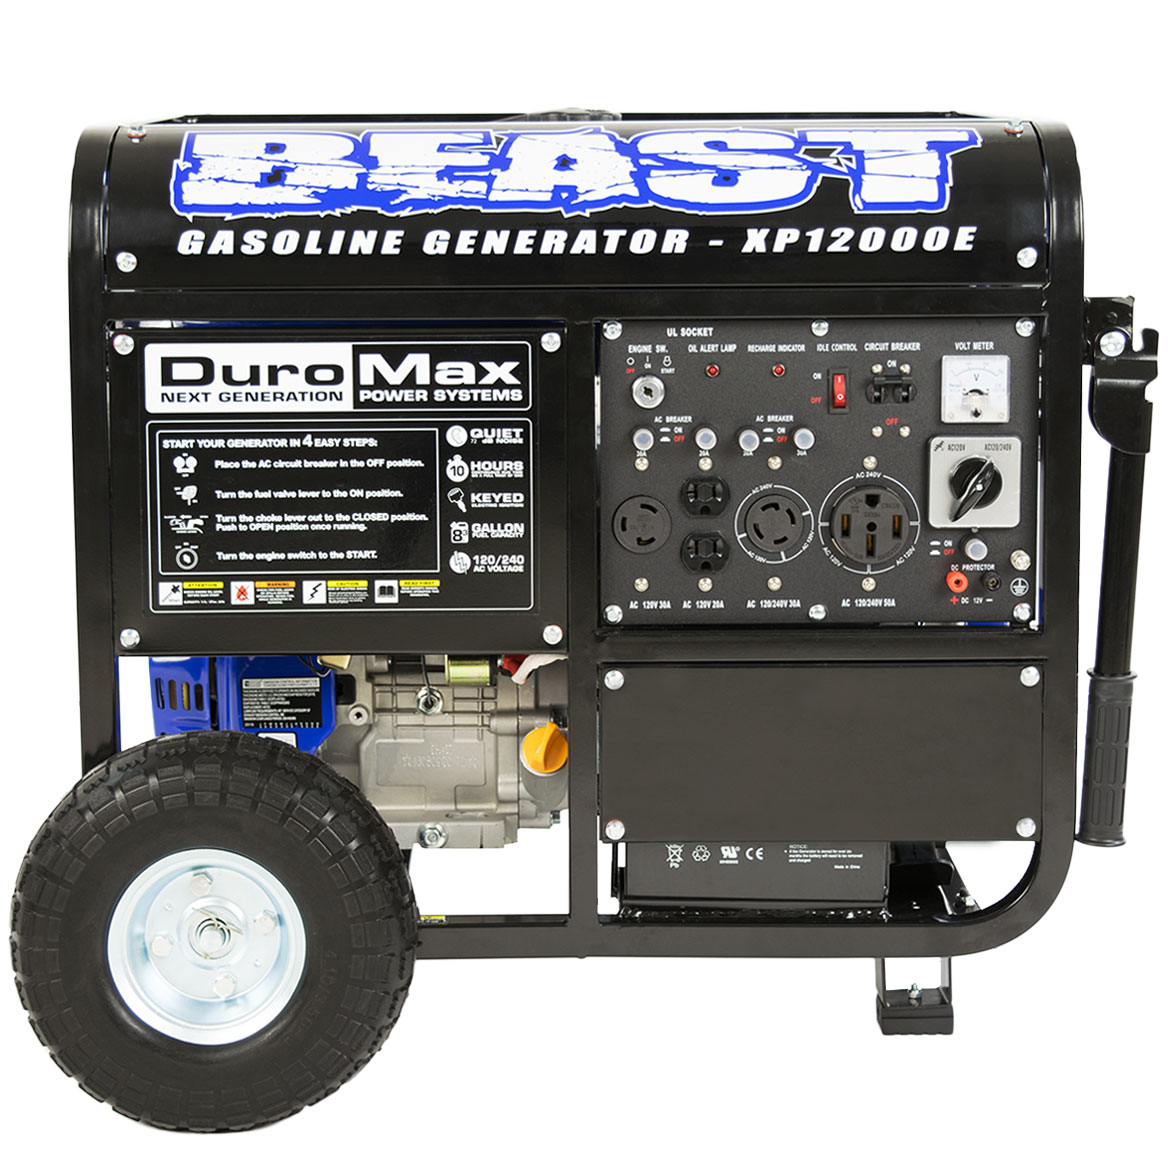 DuroMax XP12000E 12000 Watt Portable Gas Electric Start Generator - Home Standby